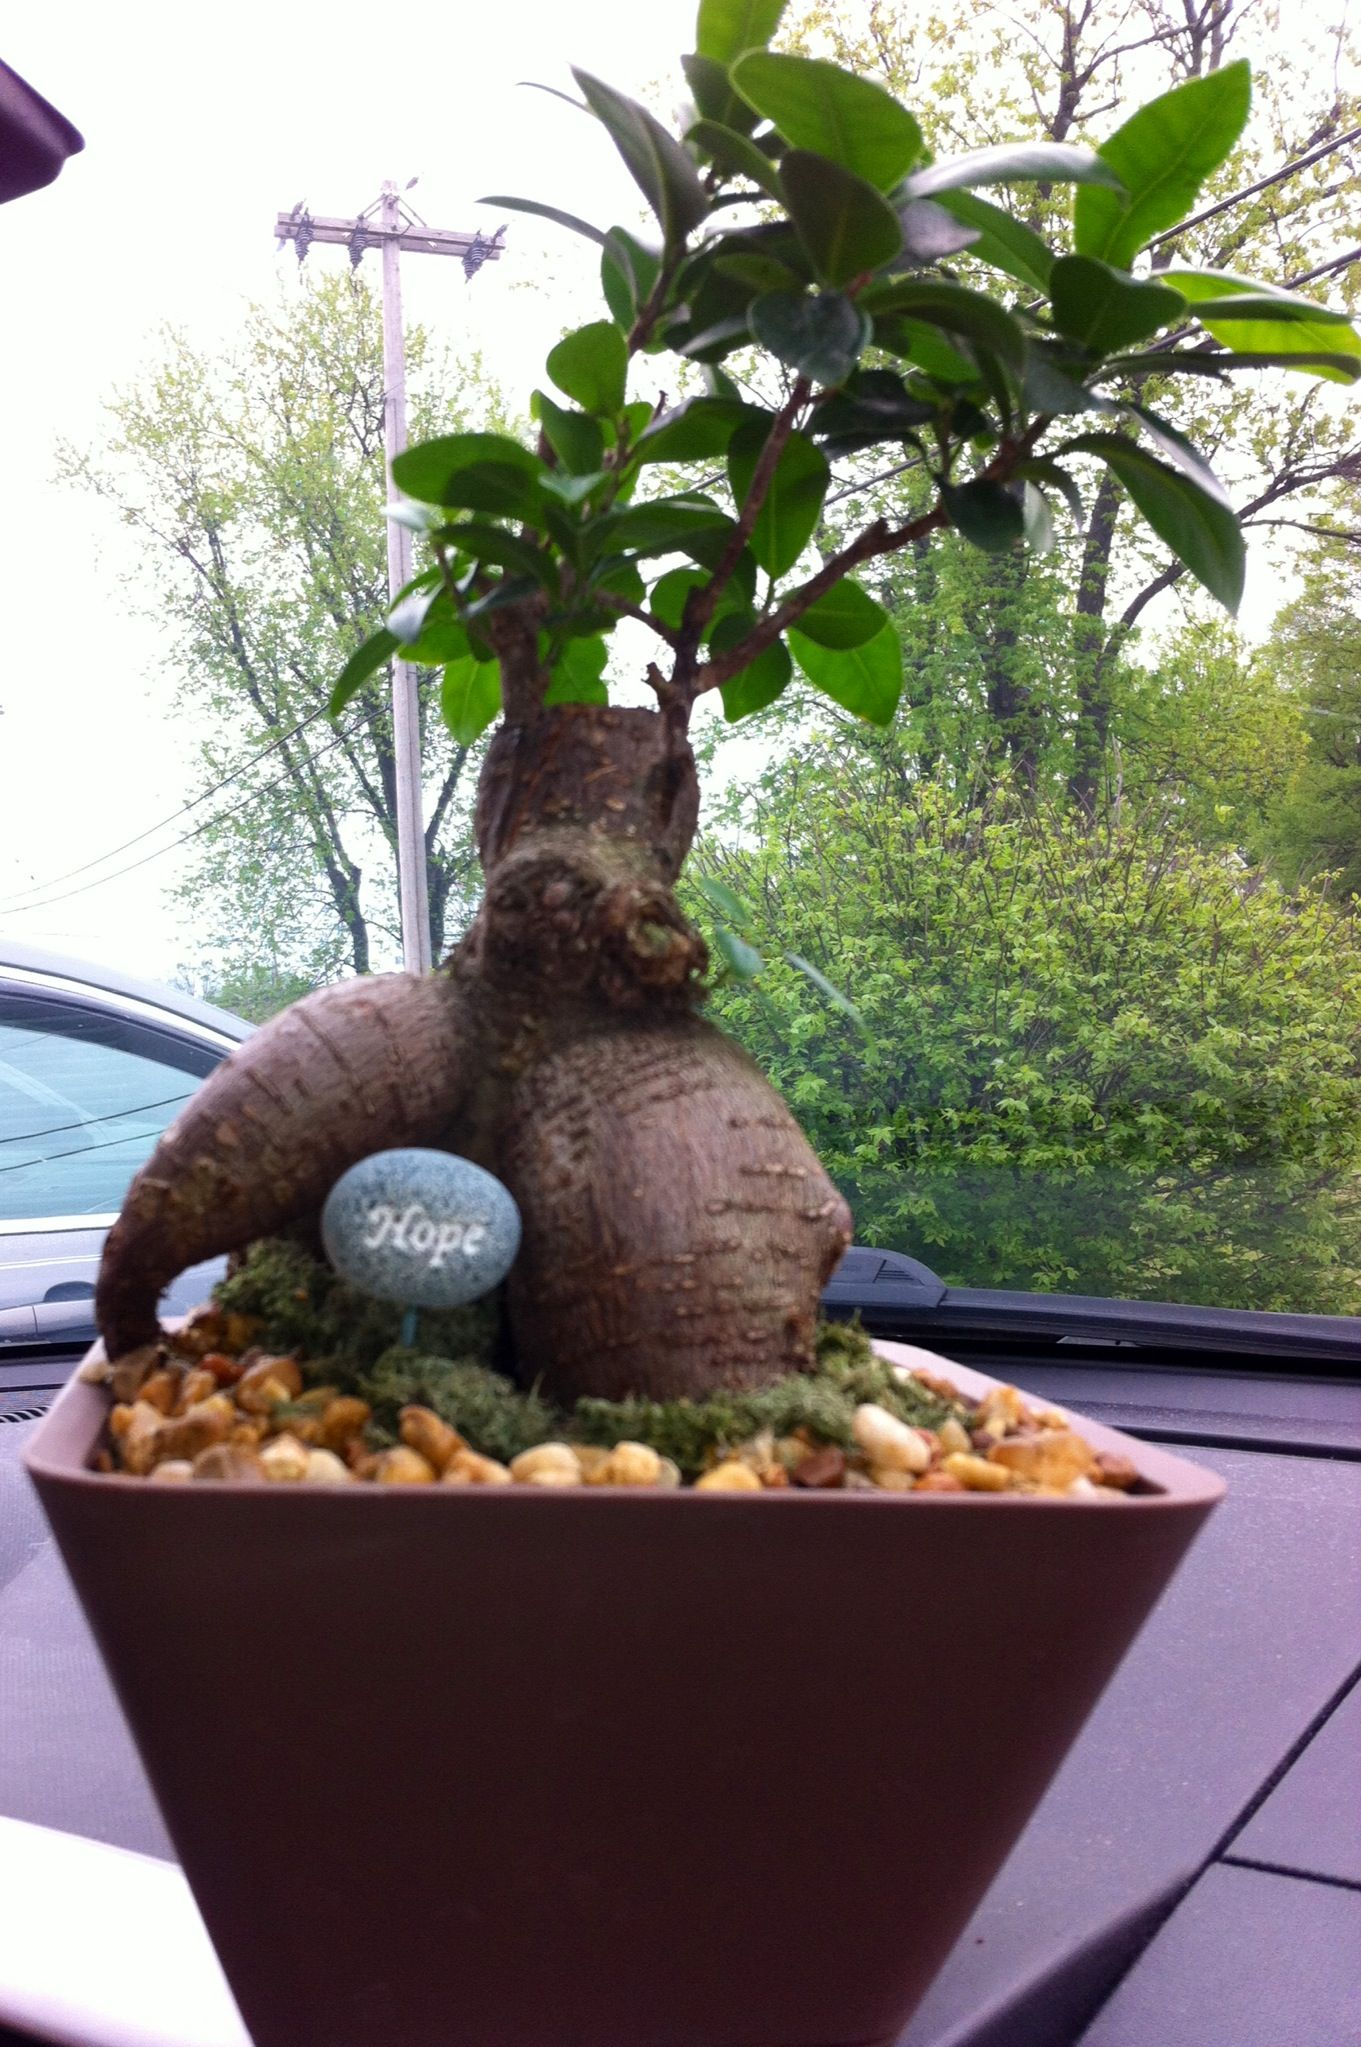 Just Bought This @ Walmart Yay Bonsai Tree!